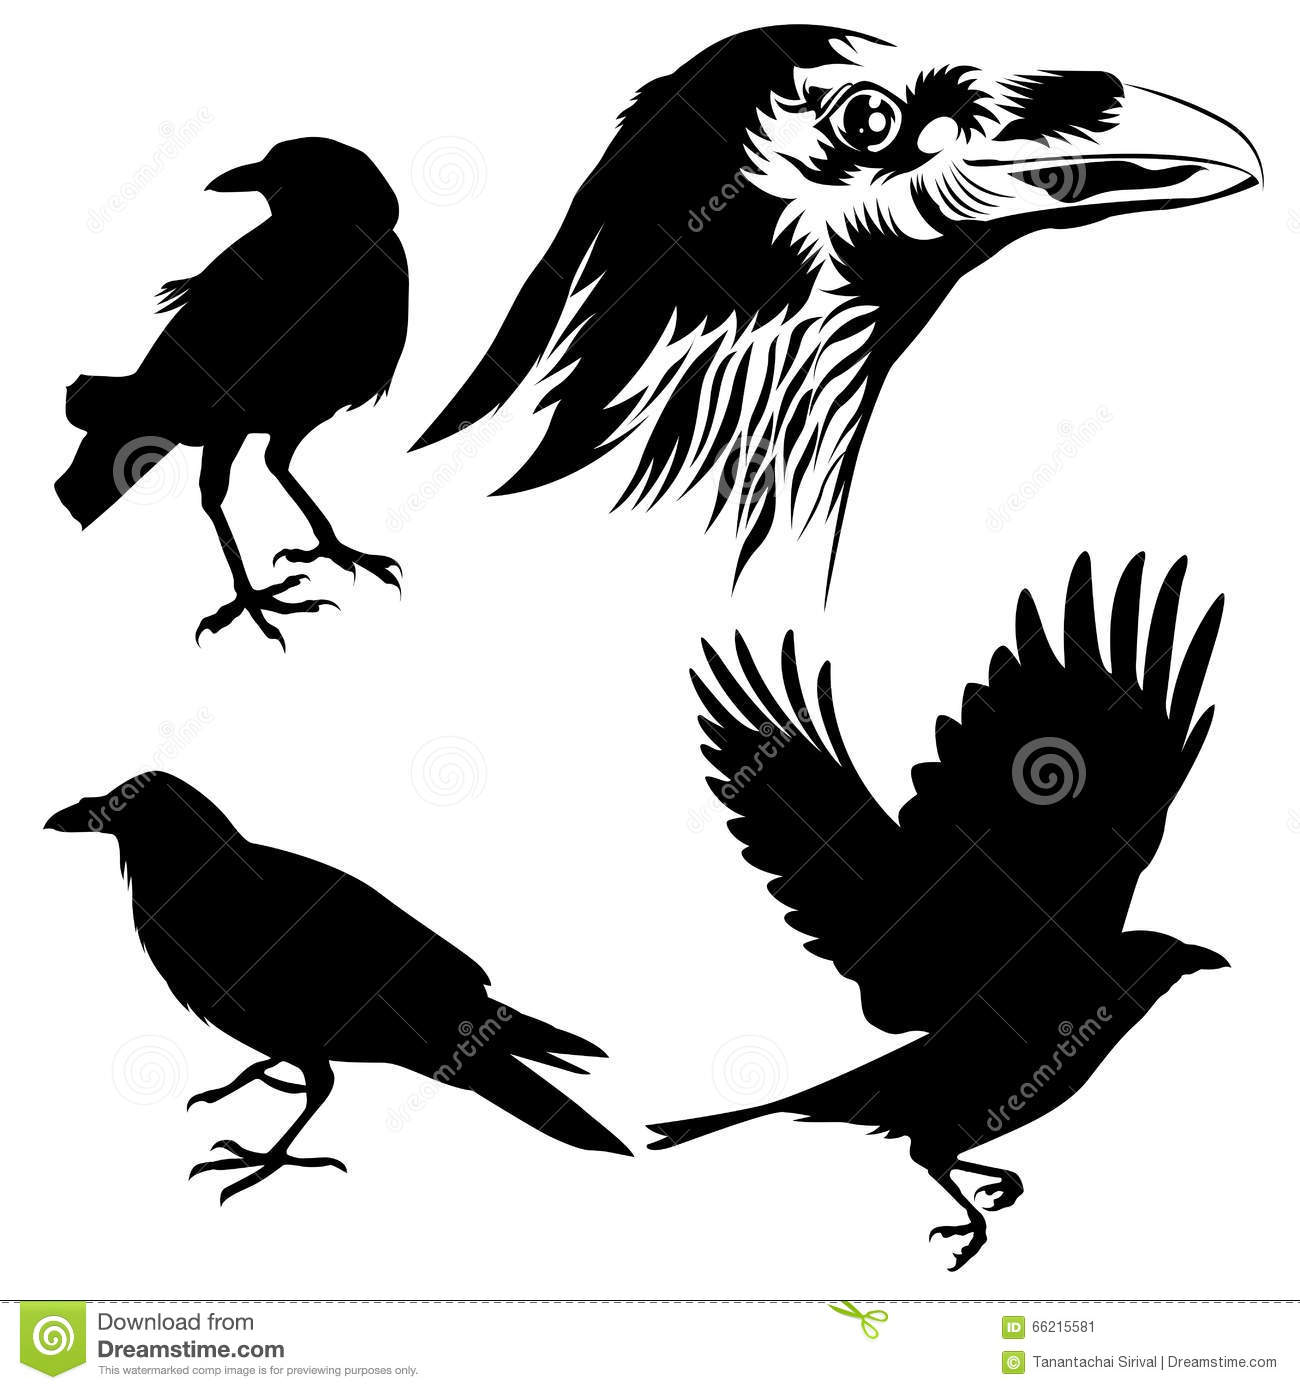 Crow Silhouette Stock Vector - Image: 66215581